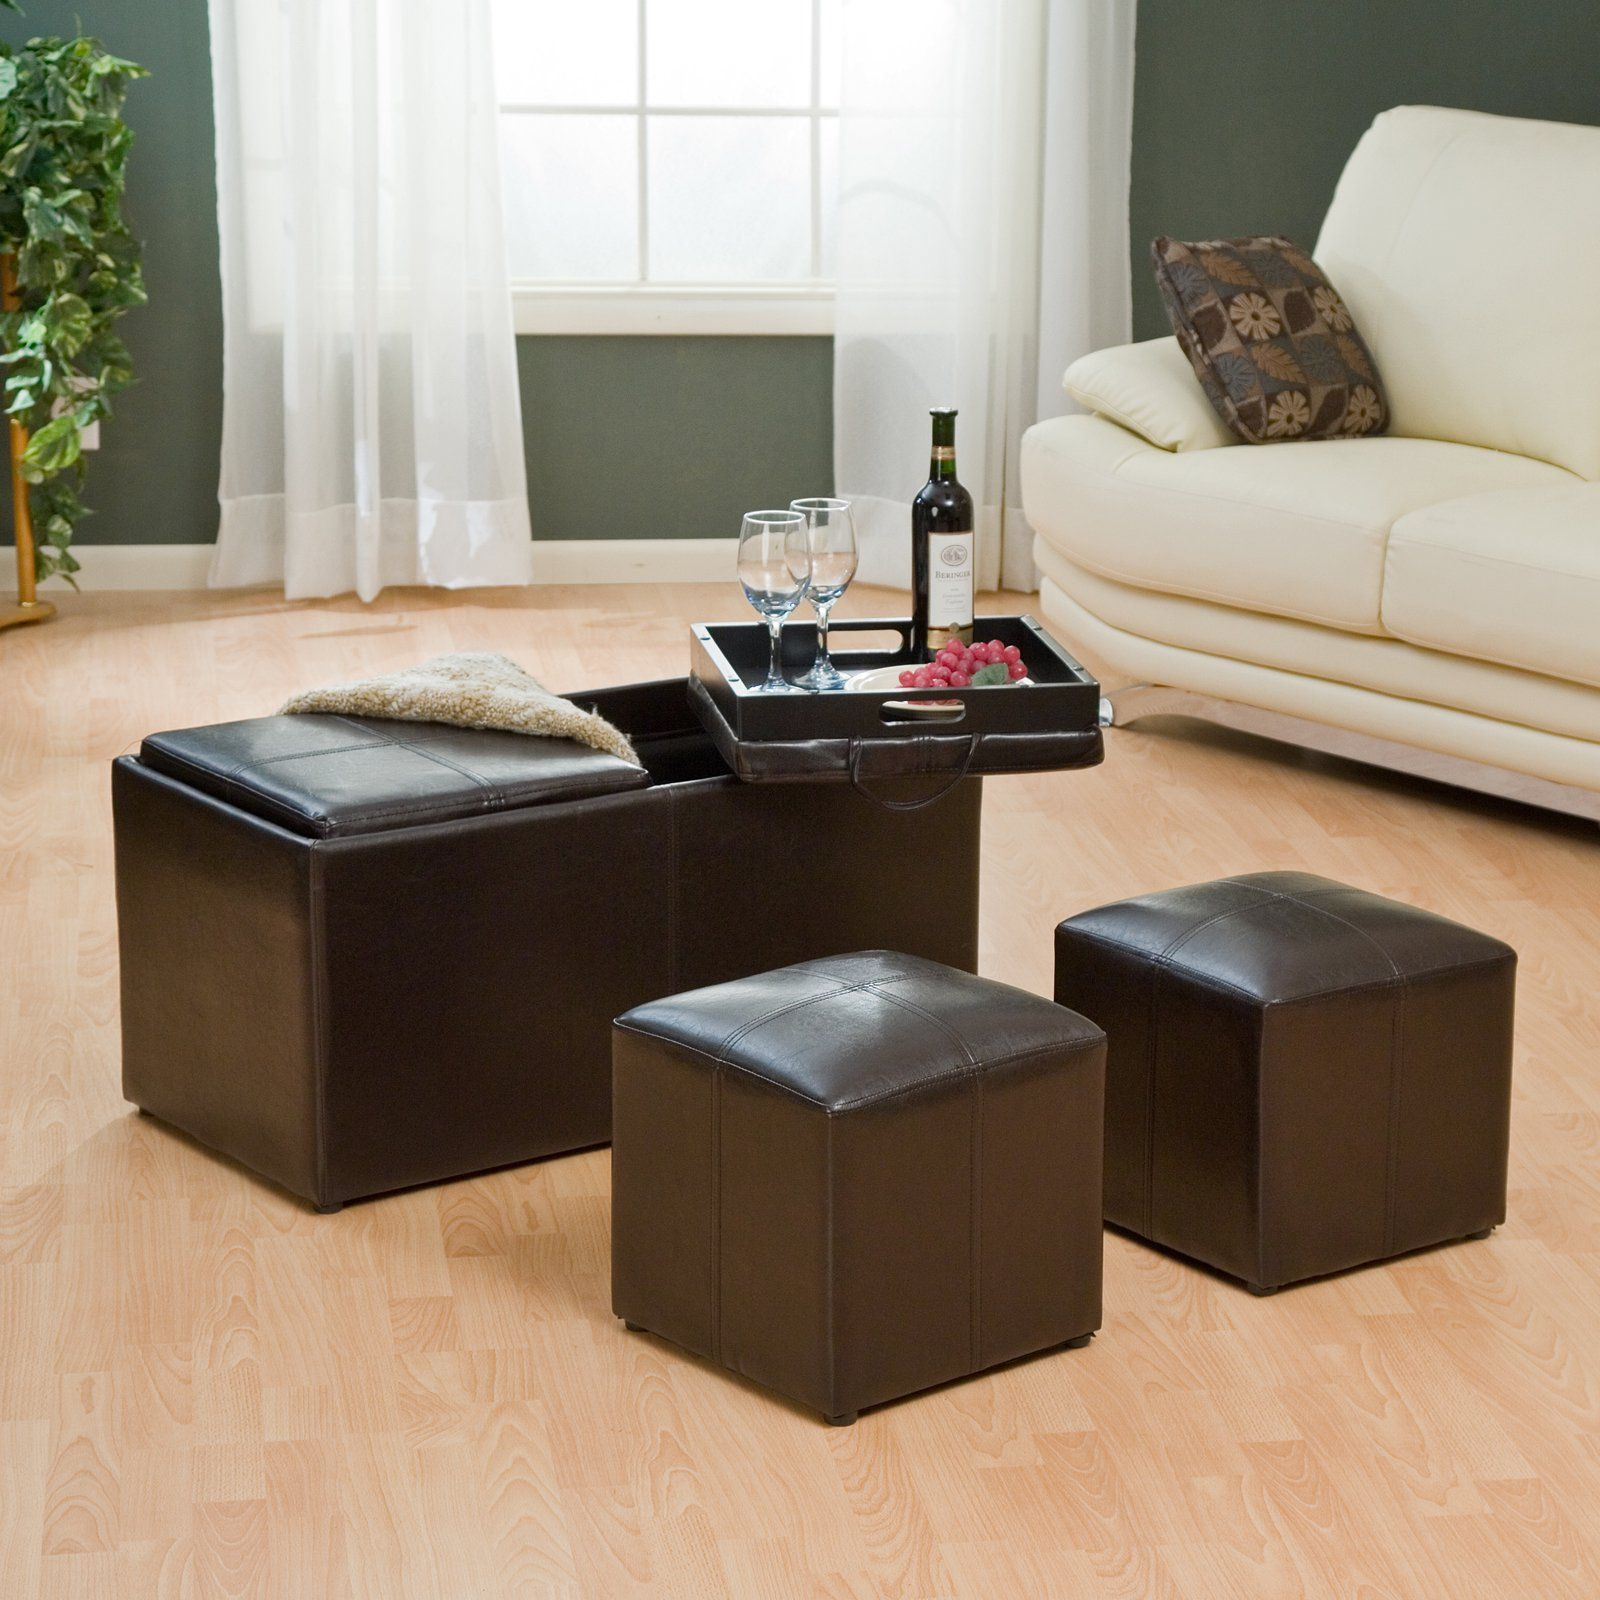 Double Ottoman Coffee Table 2